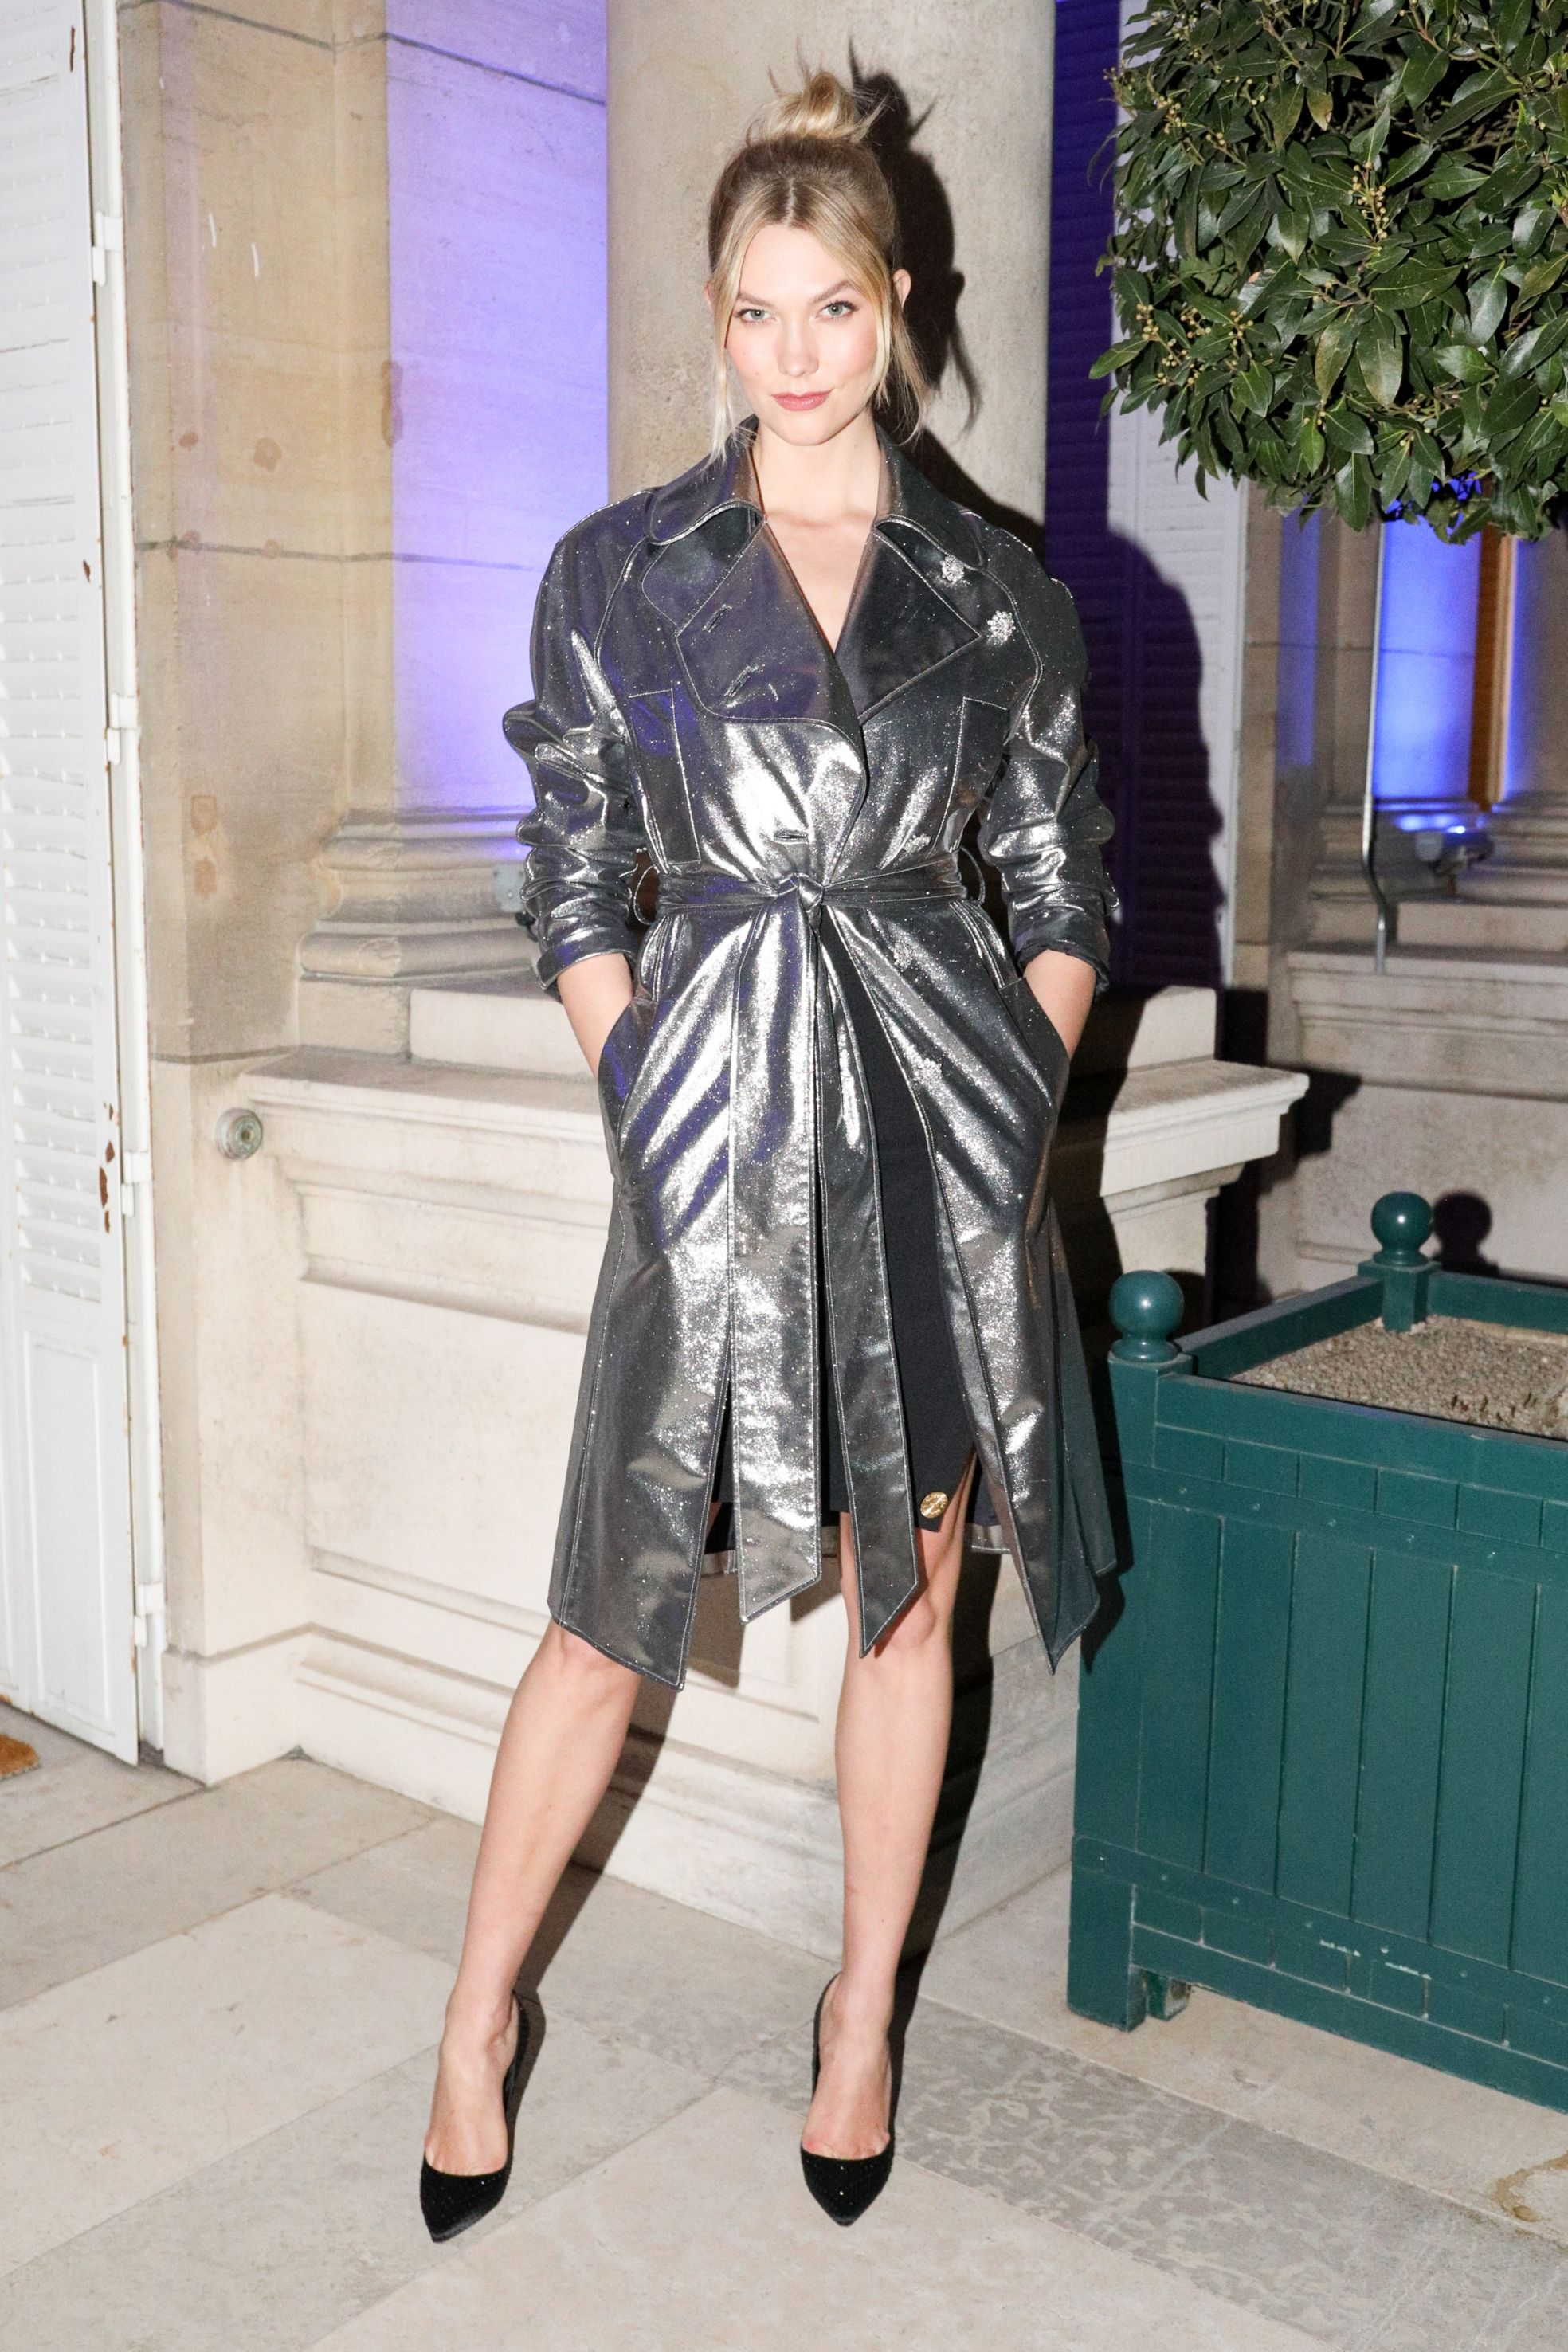 Karlie Kloss Karlie Kloss attends the Jamie D. McCourt and Diane von Furstenberg hosted cocktail reception in celebration of the forthcoming opening of the Statue of Liberty Museum on February 26 in Paris.